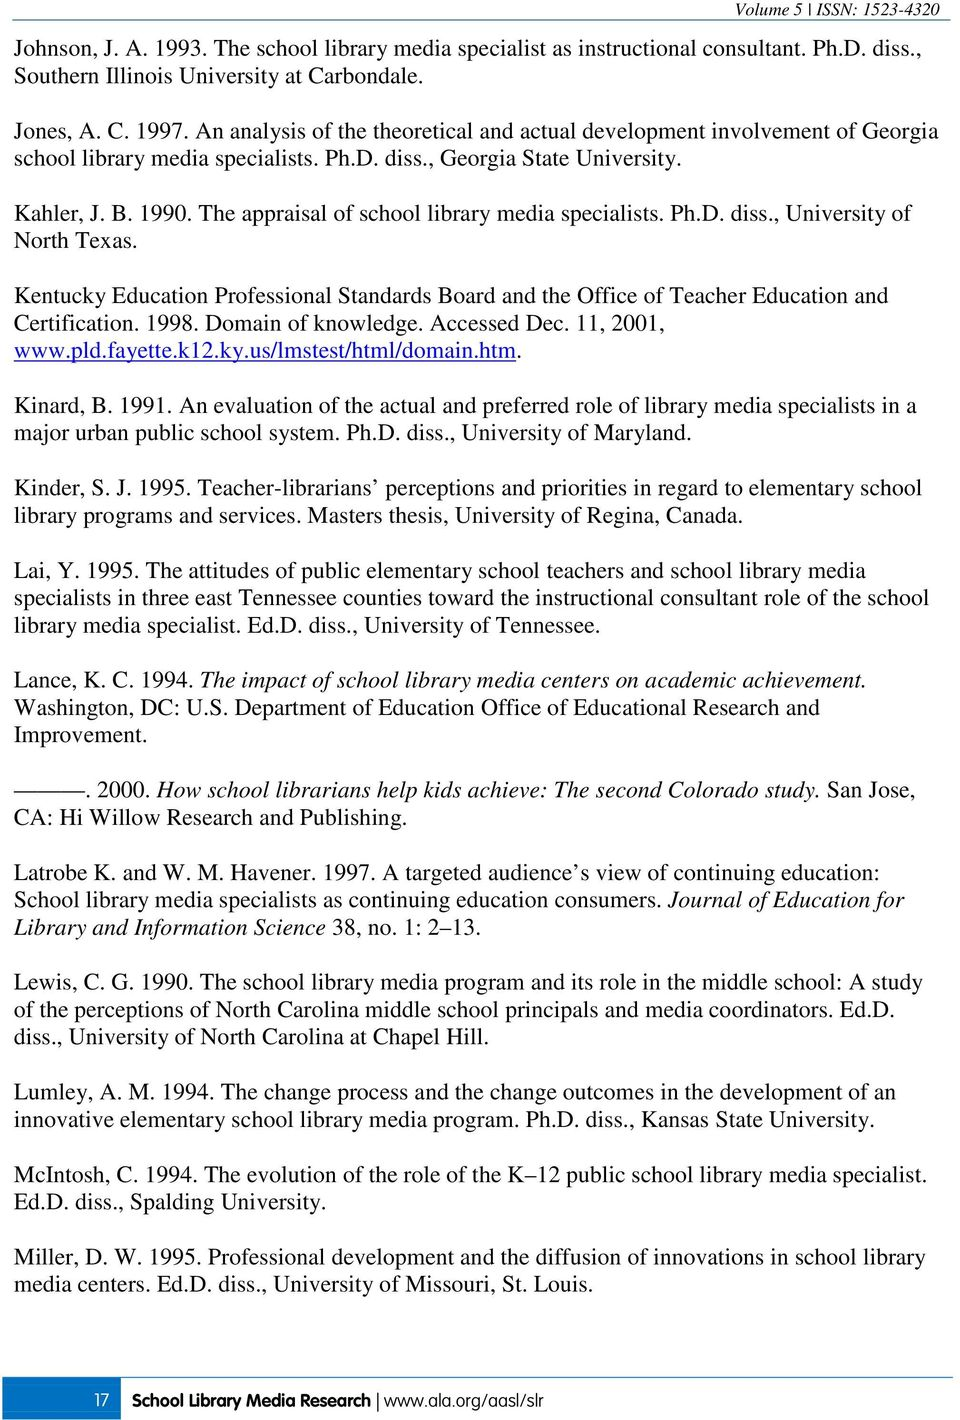 The appraisal of school library media specialists. Ph.D. diss., University of North Texas. Kentucky Education Professional Standards Board and the Office of Teacher Education and Certification. 1998.